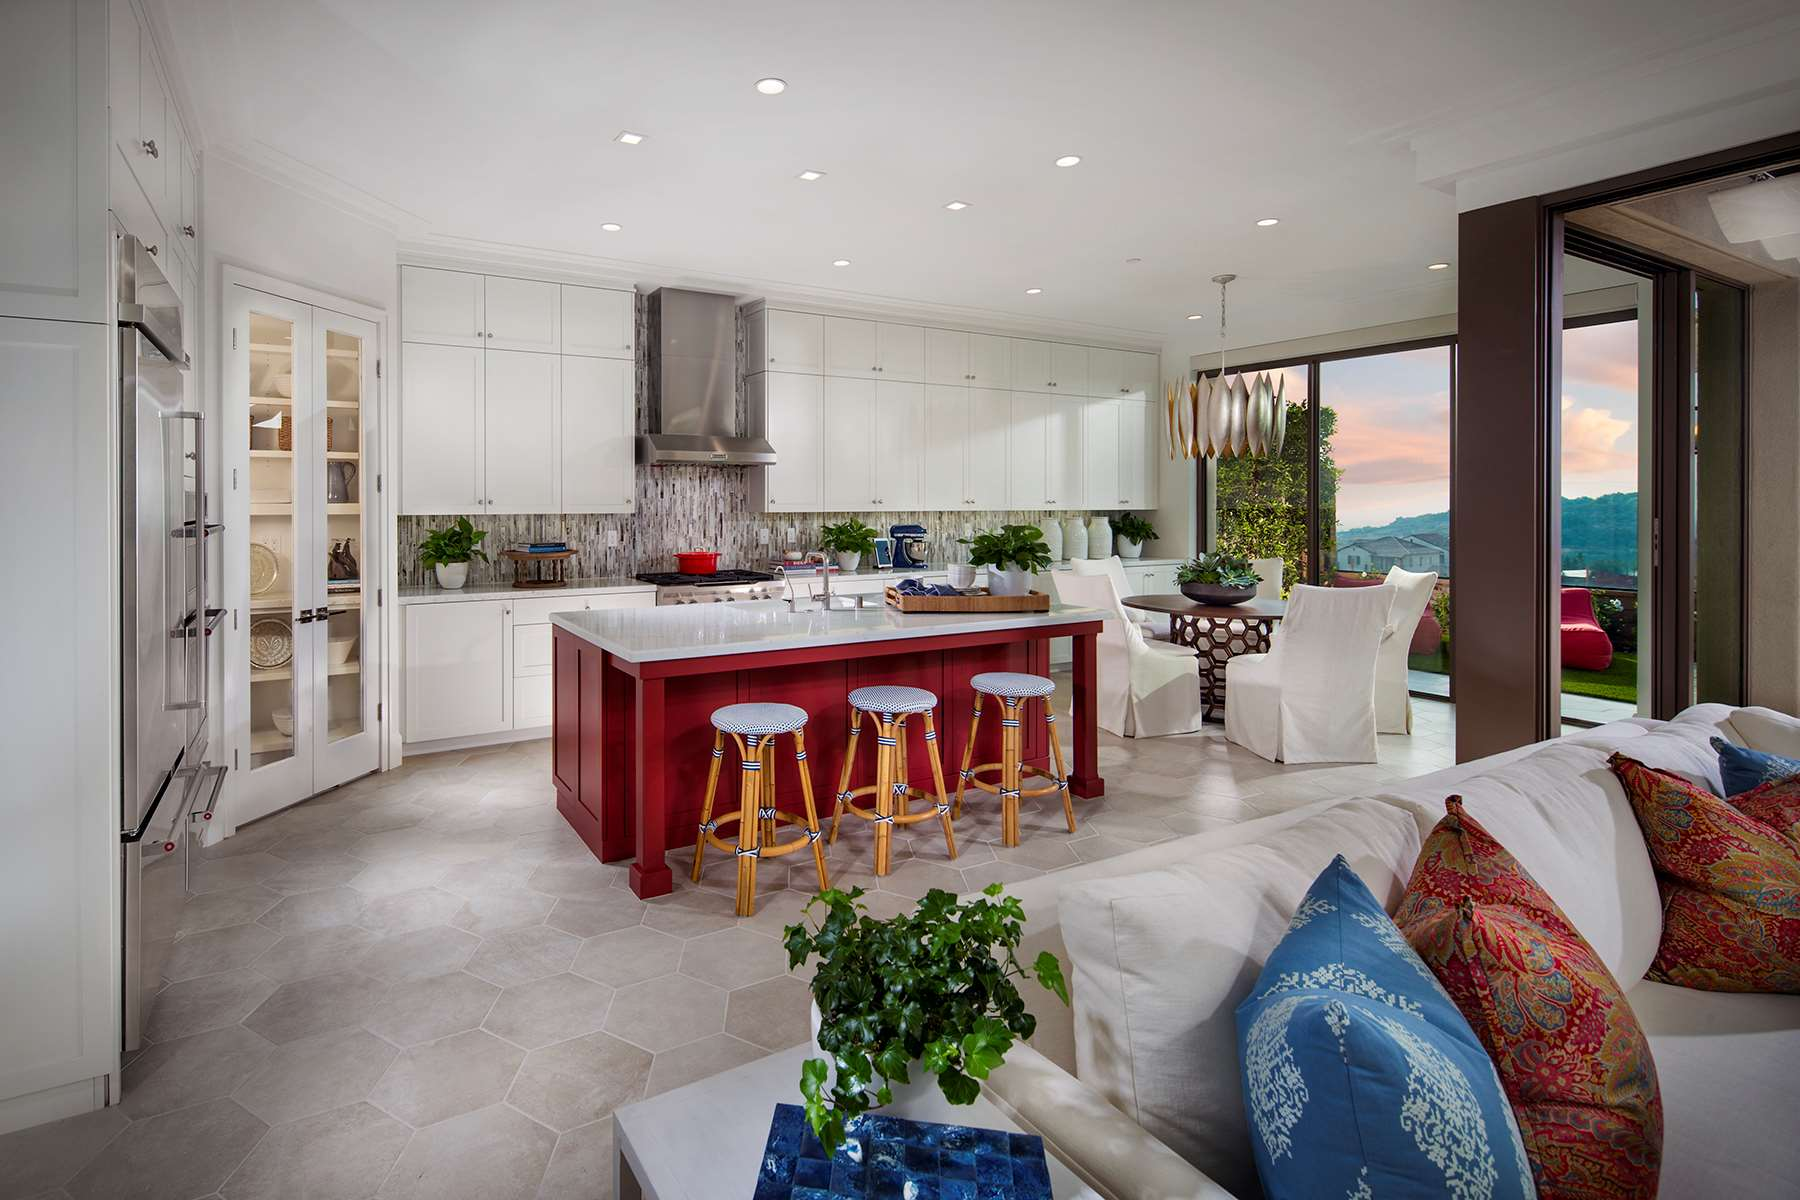 Kitchen at Como Residence 2 in Irvine